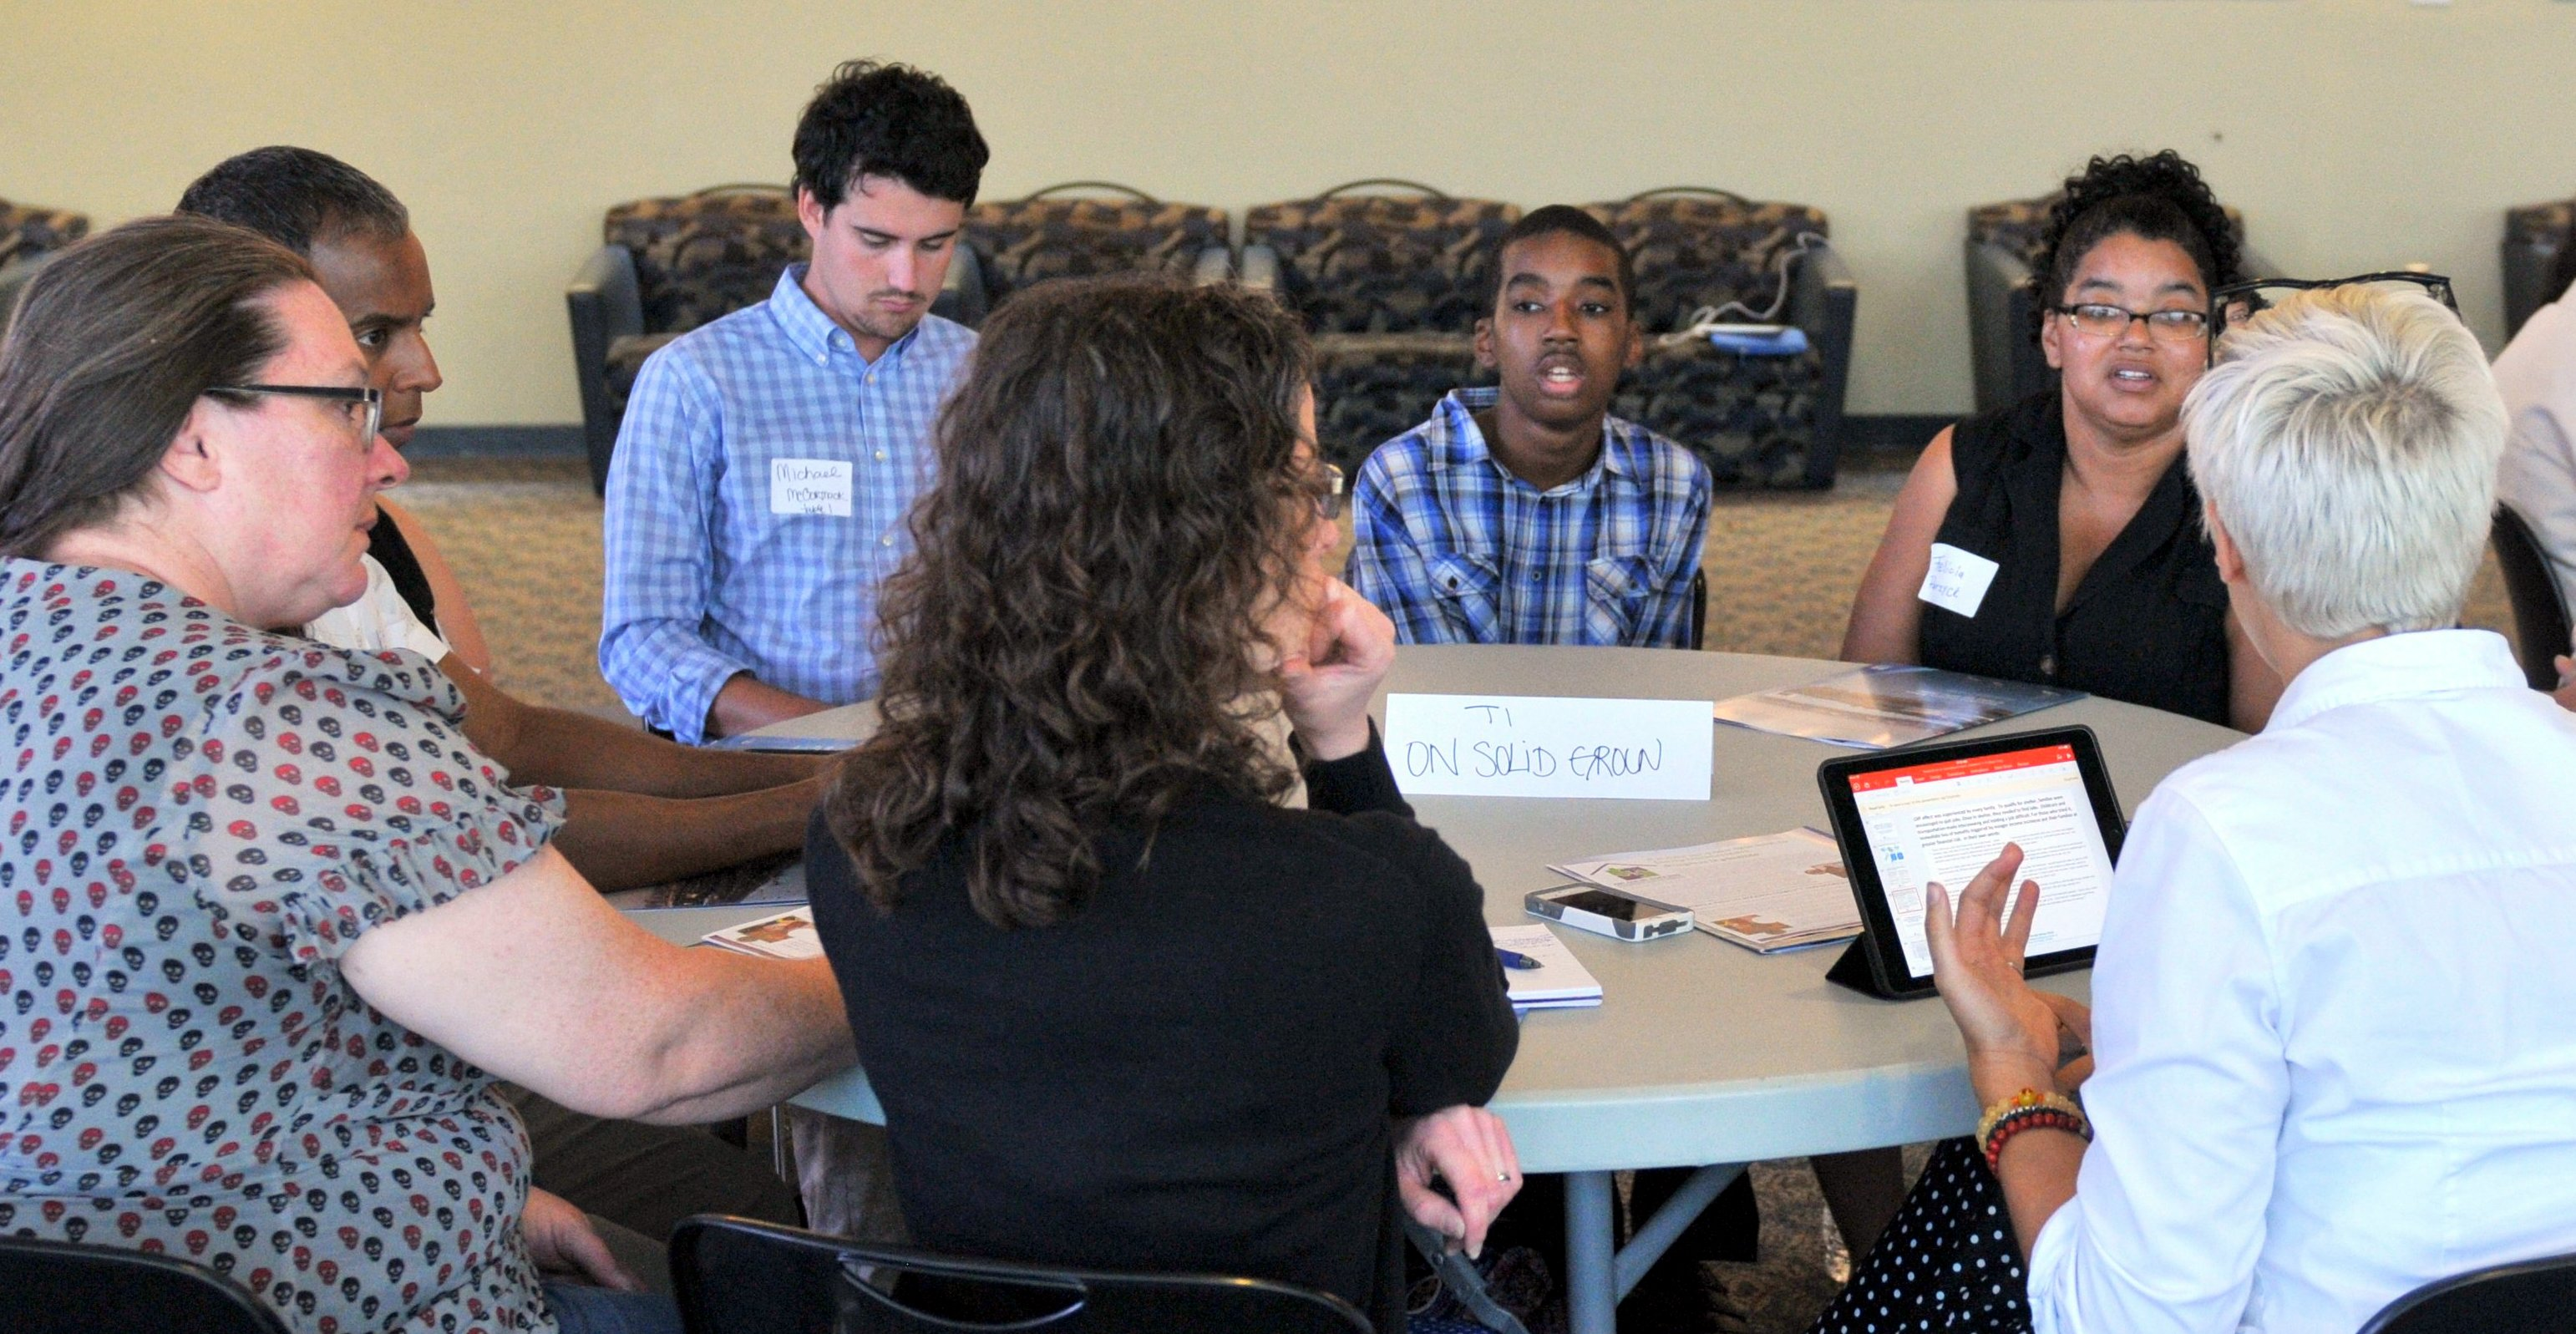 Symposium participants discuss Center for Social Policy's On Solid Ground research project.